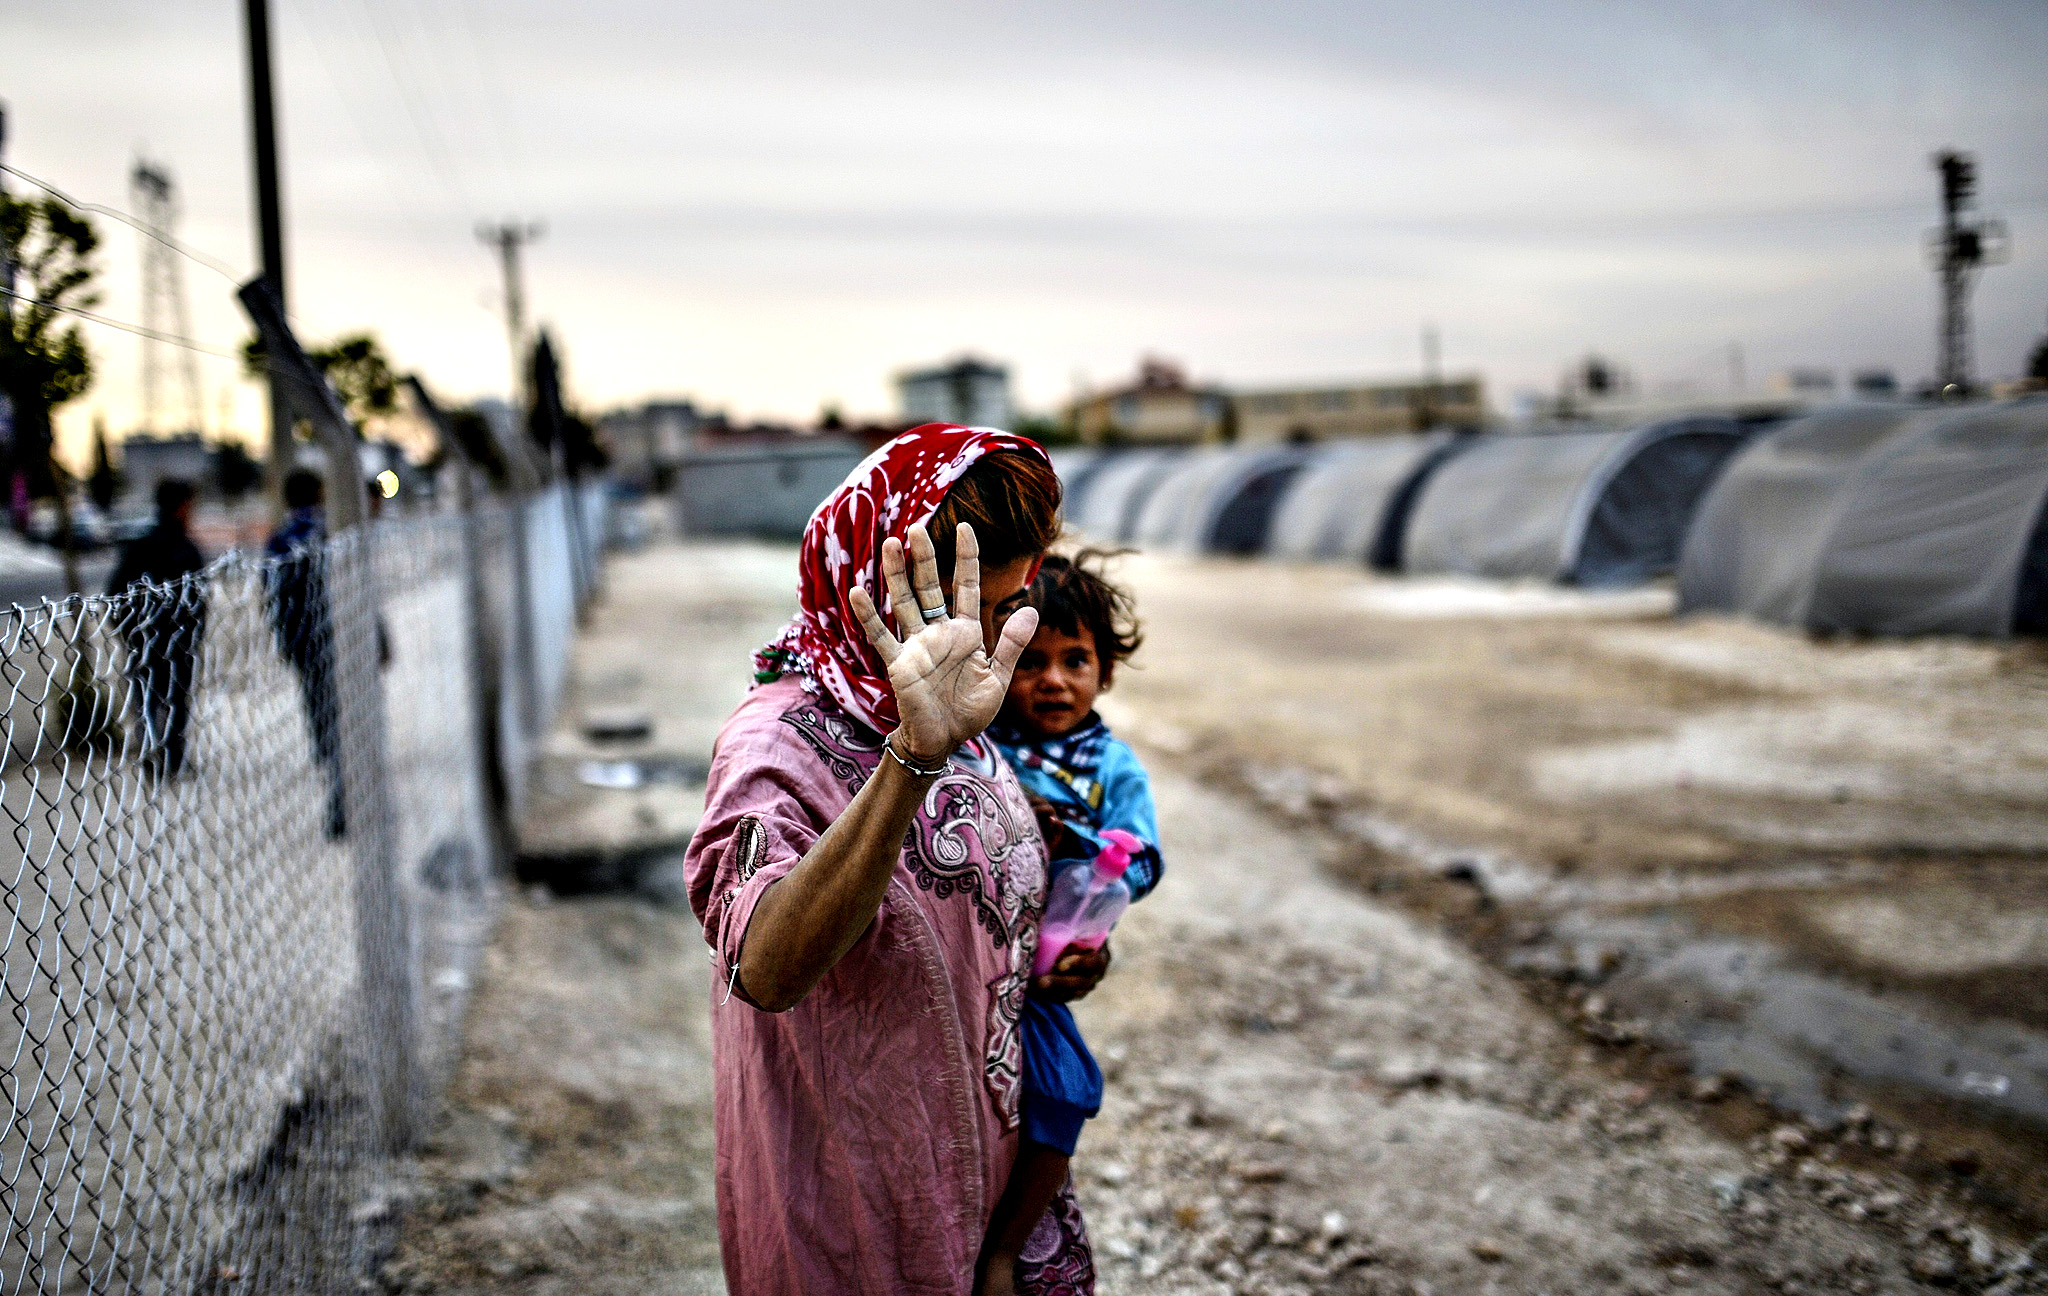 A Syrian Kurdish woman walks with her baby on October 23, 2014,  in the Rojava refugee camp at Suruc in Sanliurfa province. Turkey said on October 21 that Kurdish peshmerga fighters based in Iraq have yet to cross into Syria from Turkish territory, a day after announcing it was assisting their transit to join the battle for the Syrian town of Kobane, also known as Ain al-Arab. It was seen as a major switch in policy by Turkey, which until now has refused to interfere in the over month-long battle for Kobane between Syrian Kurdish fighters and Islamic State (IS) jihadists.